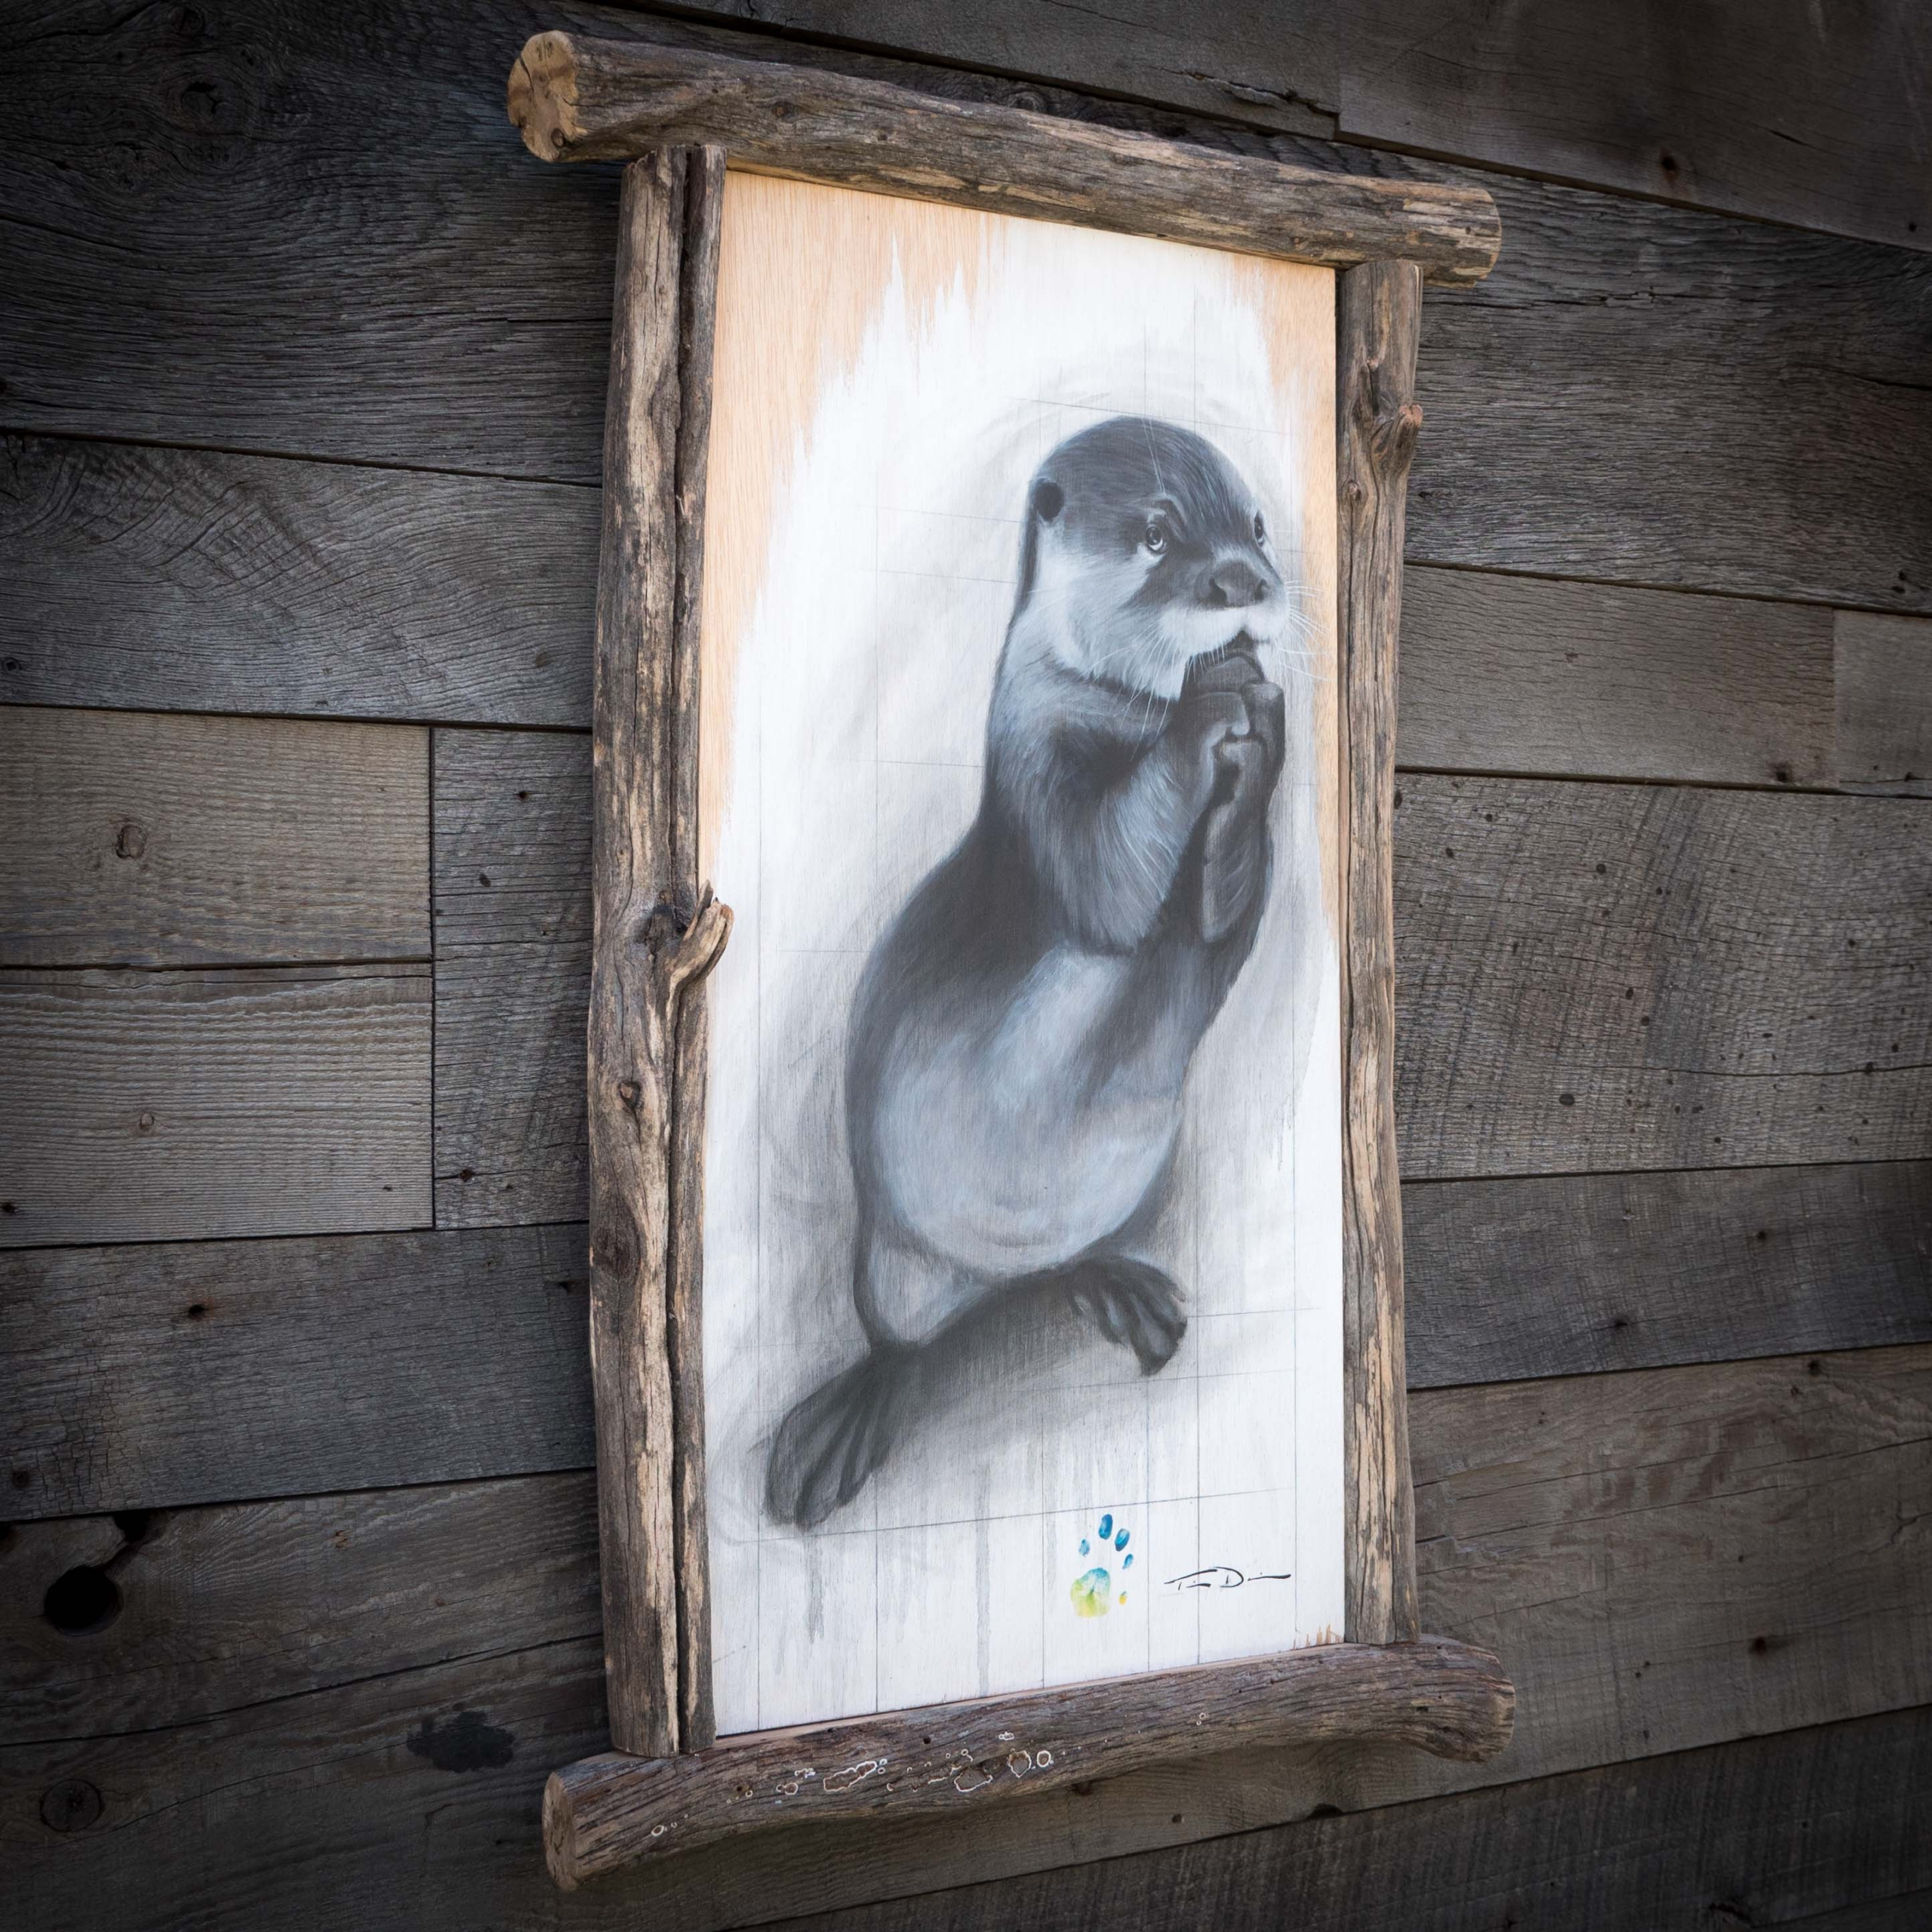 Otter-Graph - Original oil painting by wildlife artist Timothy Davison of the Davison Art Company featuring an Asian small clawed otter in black and white. This one-of-a-kind collaboration painting has real otter footprints in the background. This painting appears to come off the surface, revealing the wood grain below. Framed with a custom driftwood frame. © COPYRIGHT TIMOTHY DAVISON